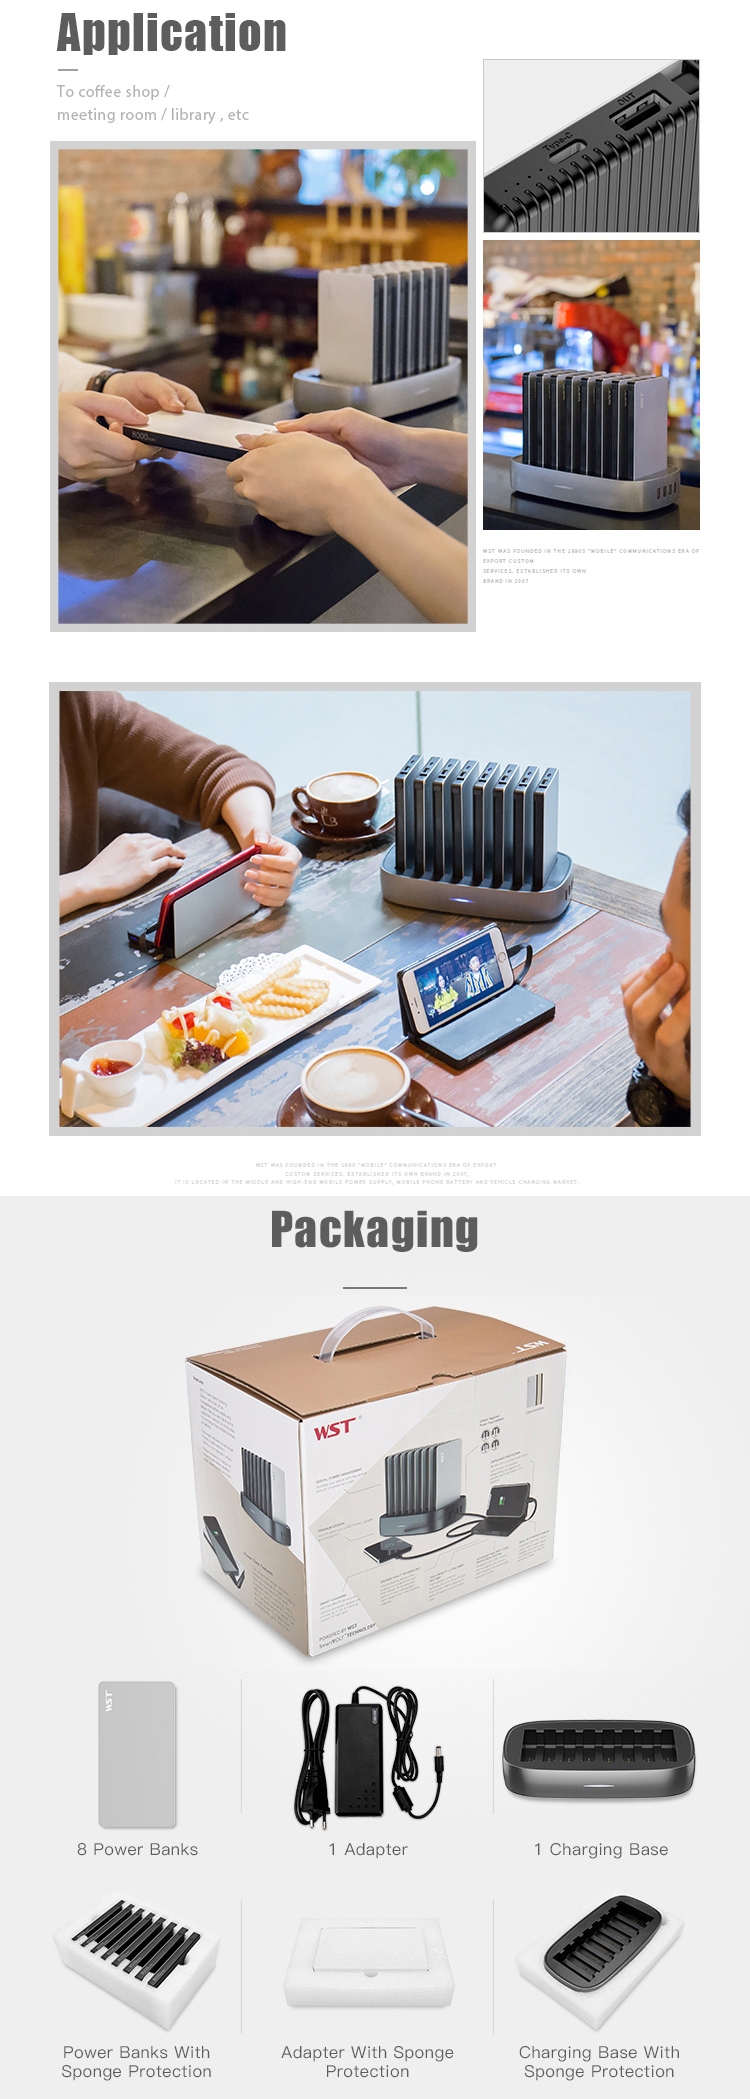 WST Portable power station 8000mah restaurant sharing power bank phone docking station